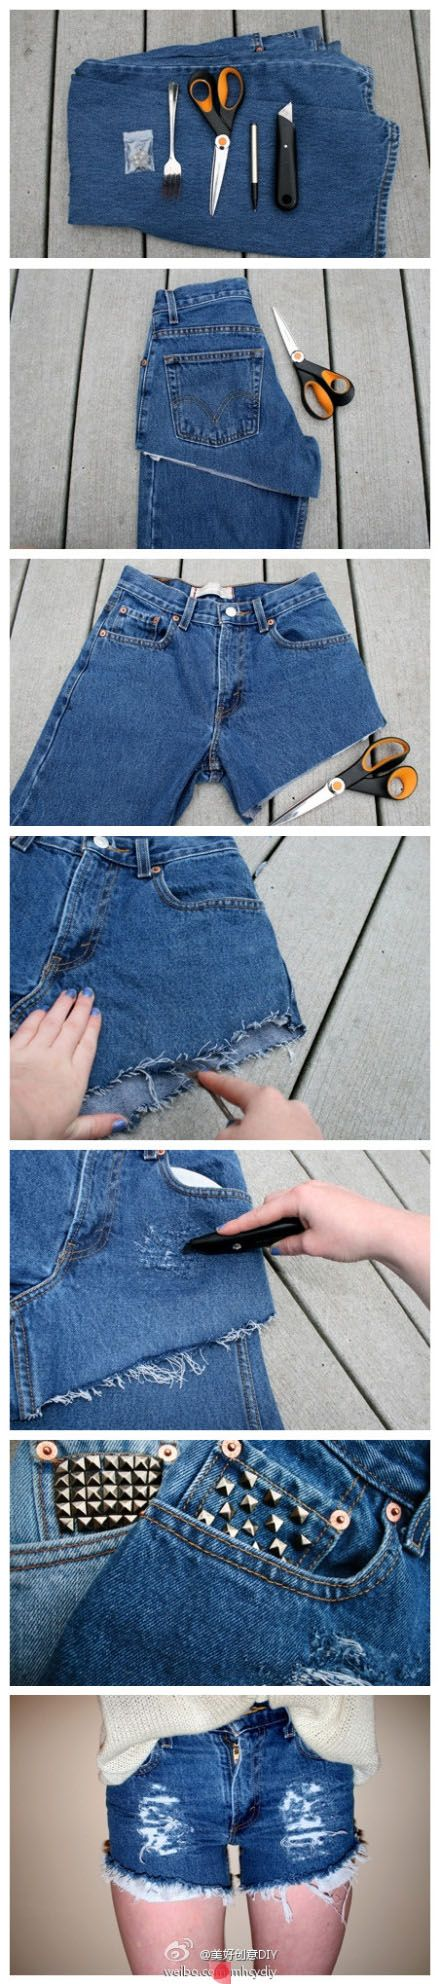 I will be creating a pair of high waisted jean shorts. To do this, I will need an old pair of jeans that I bought from a consignment store about a year ago, that I havent touched yet. I am going to get a piece of lace and sew it around the side of the legs to add more creativity, while making them look like a nicer pair of shorts. The lace can make them more dressy by wearing with a nice blouse and heels for the summer. I can find this lace fabric in the classroom!